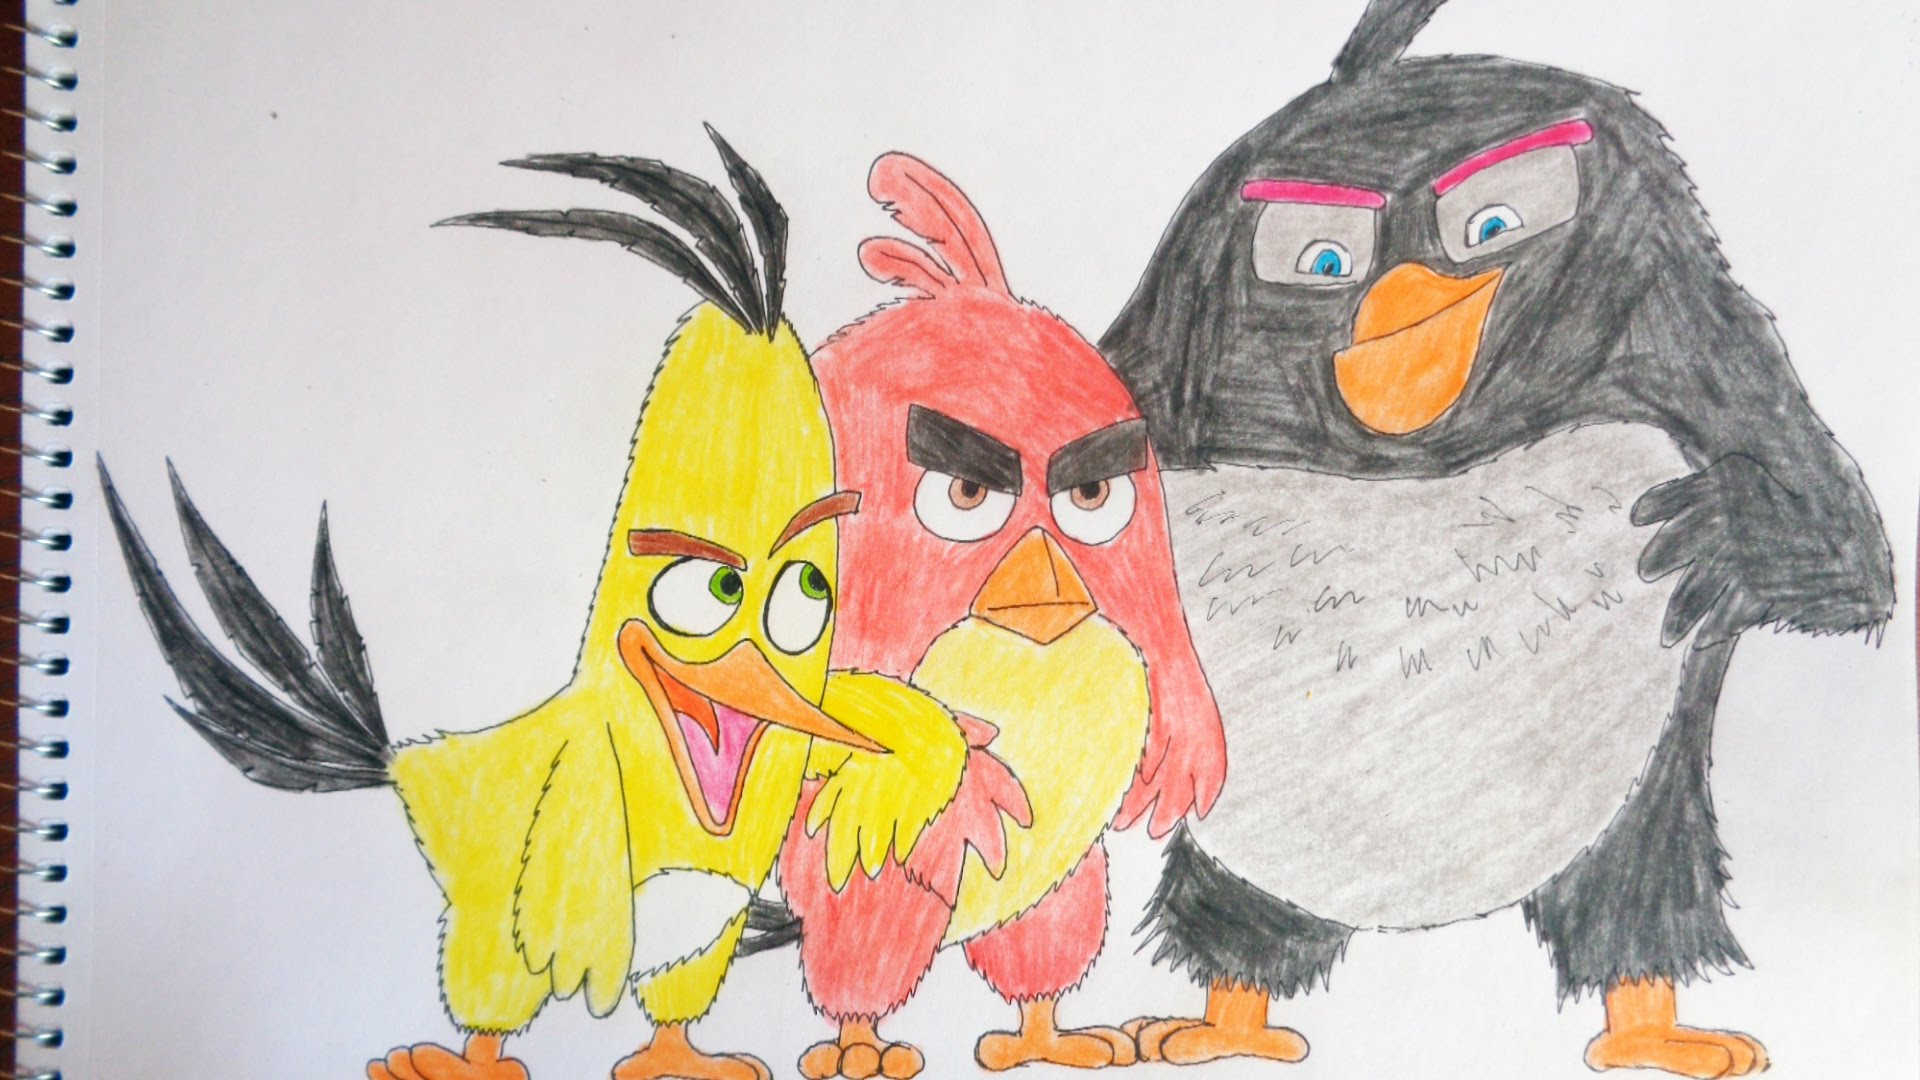 1920x1080 How To Draw Angry Birds The Movie 2016